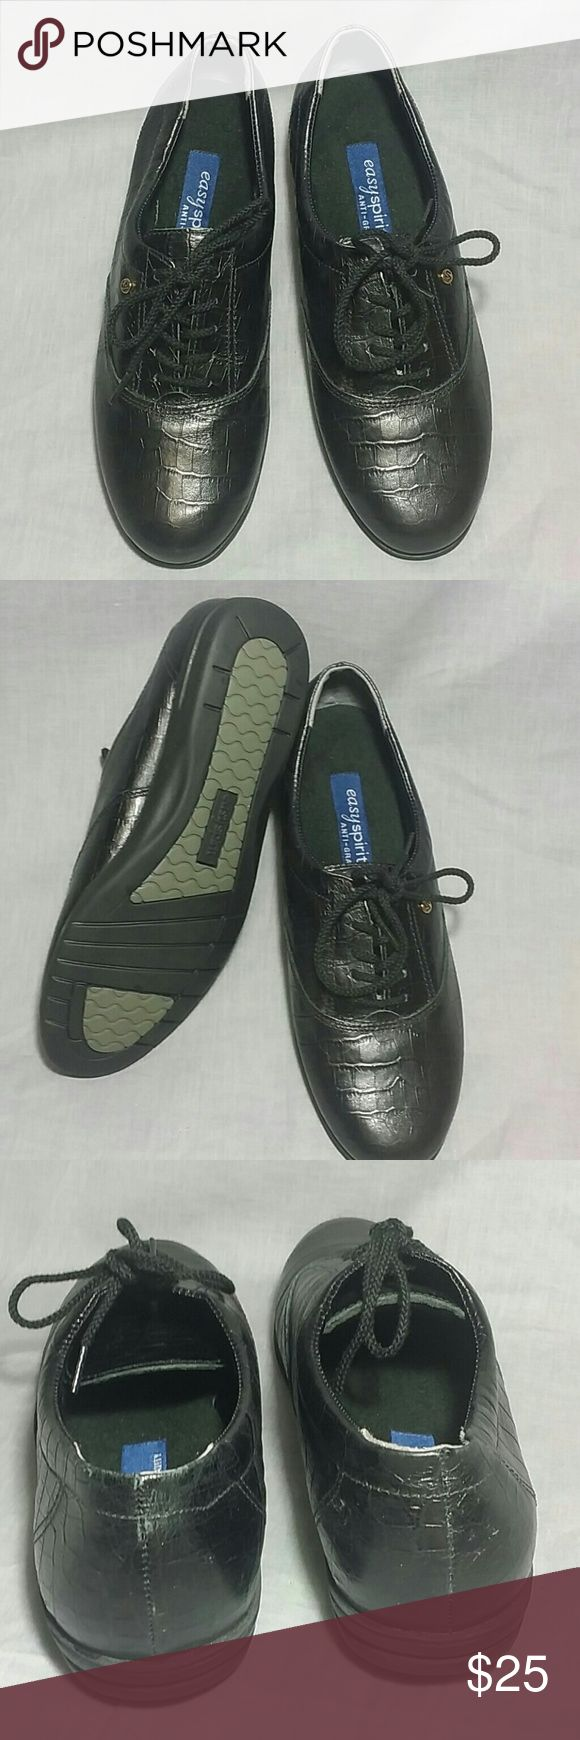 Women's easy spirit shoes black 6.5 Narrow Leather Item is in a good condition ANTI-GRAVITY Shoes NO PETS AND SMOKE FREE HOME Easy Spirit Shoes